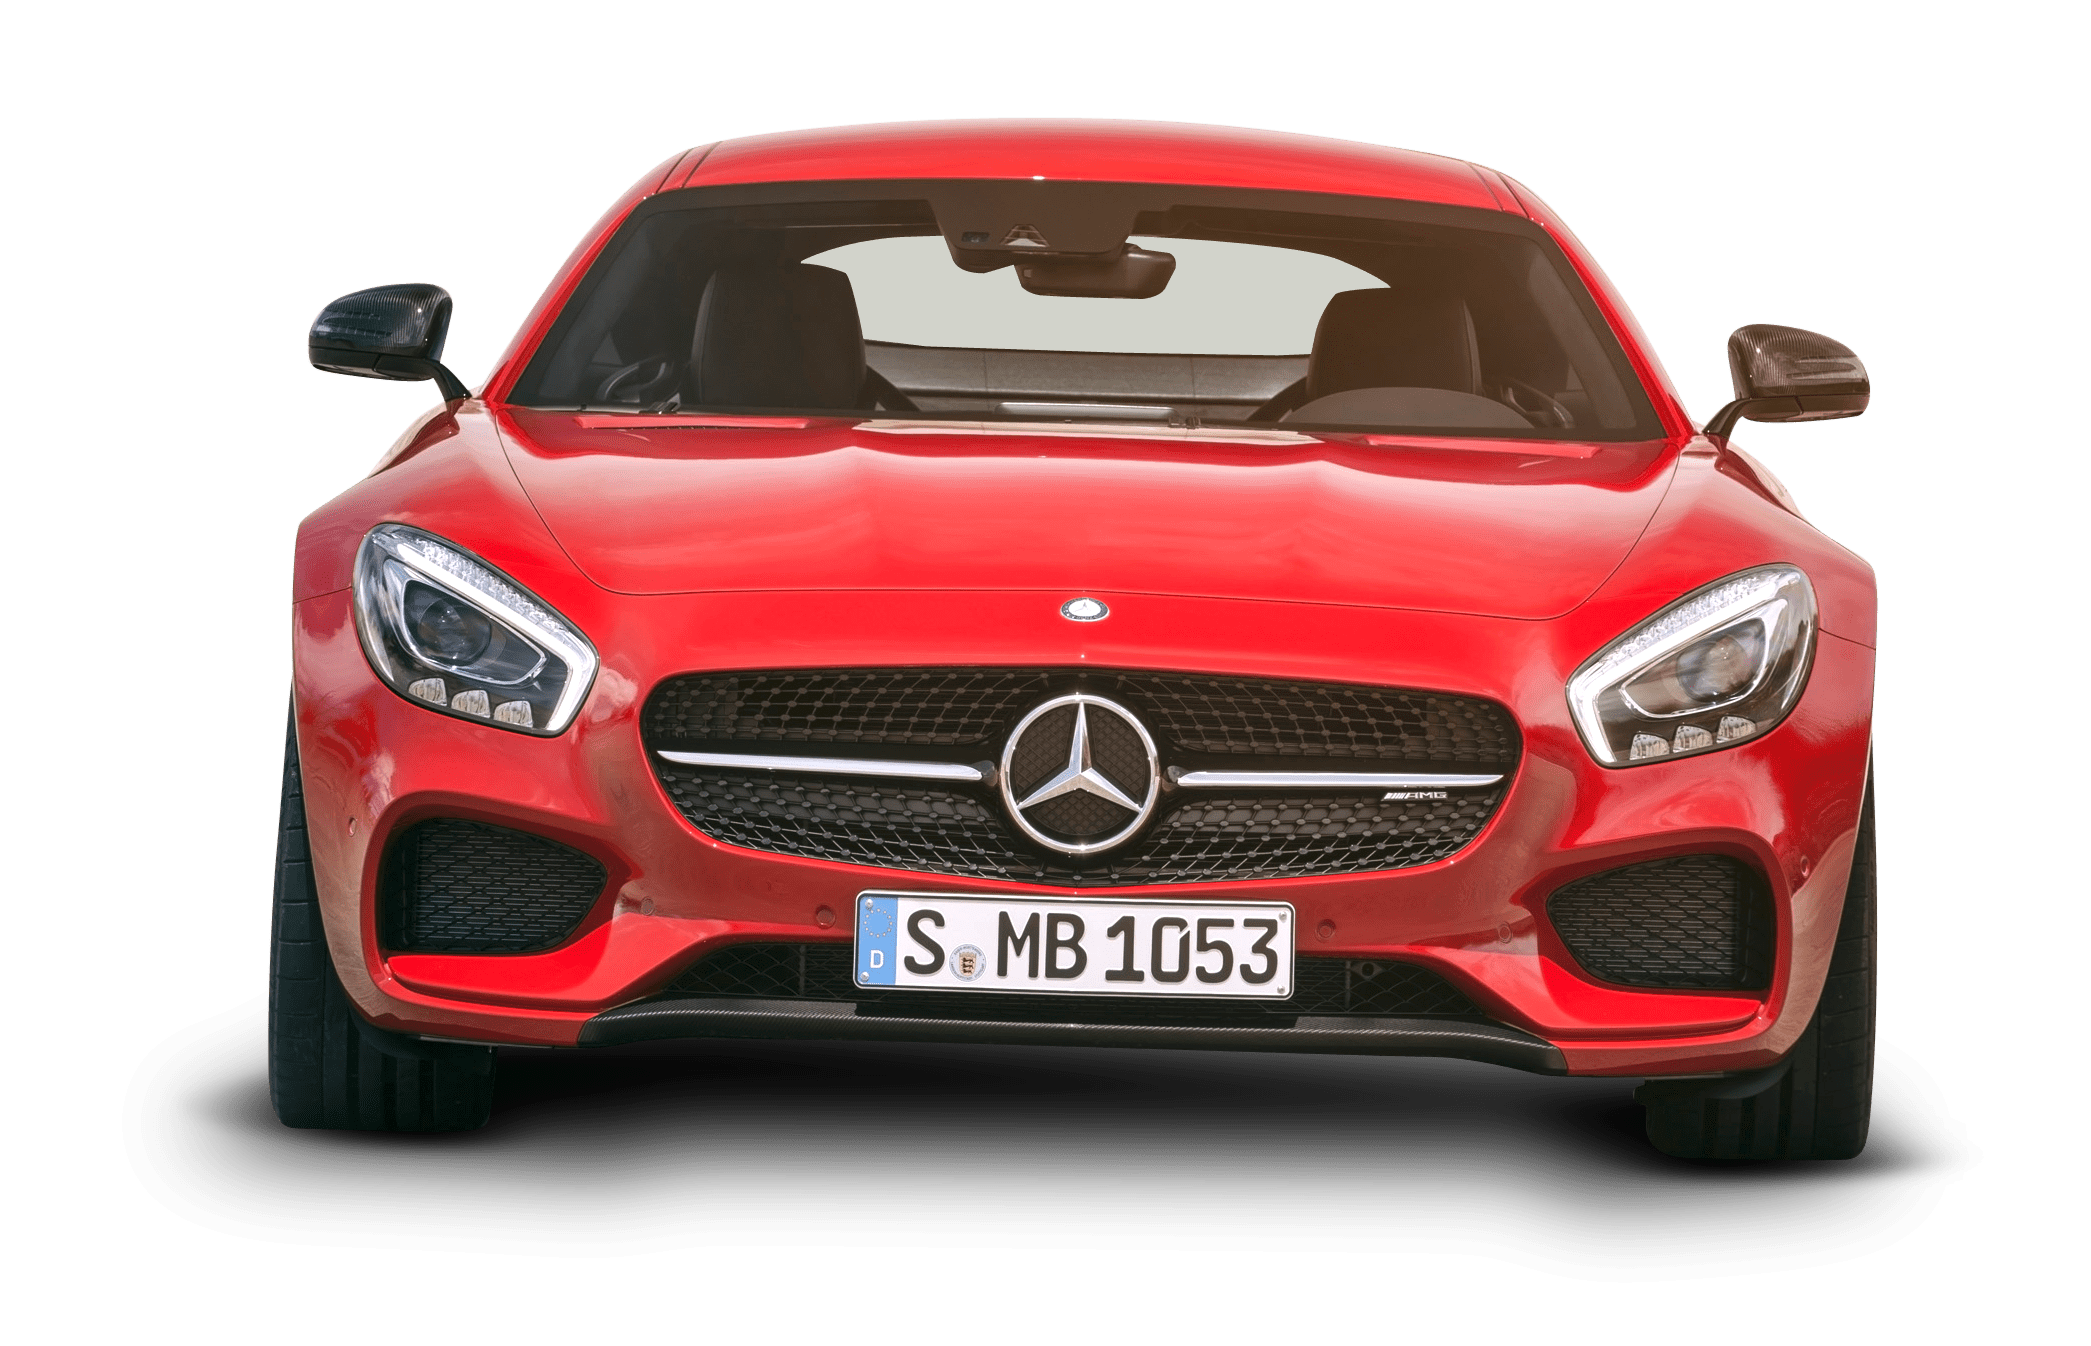 Mercedes AMG GT Red Car Front PNG Image PngPix